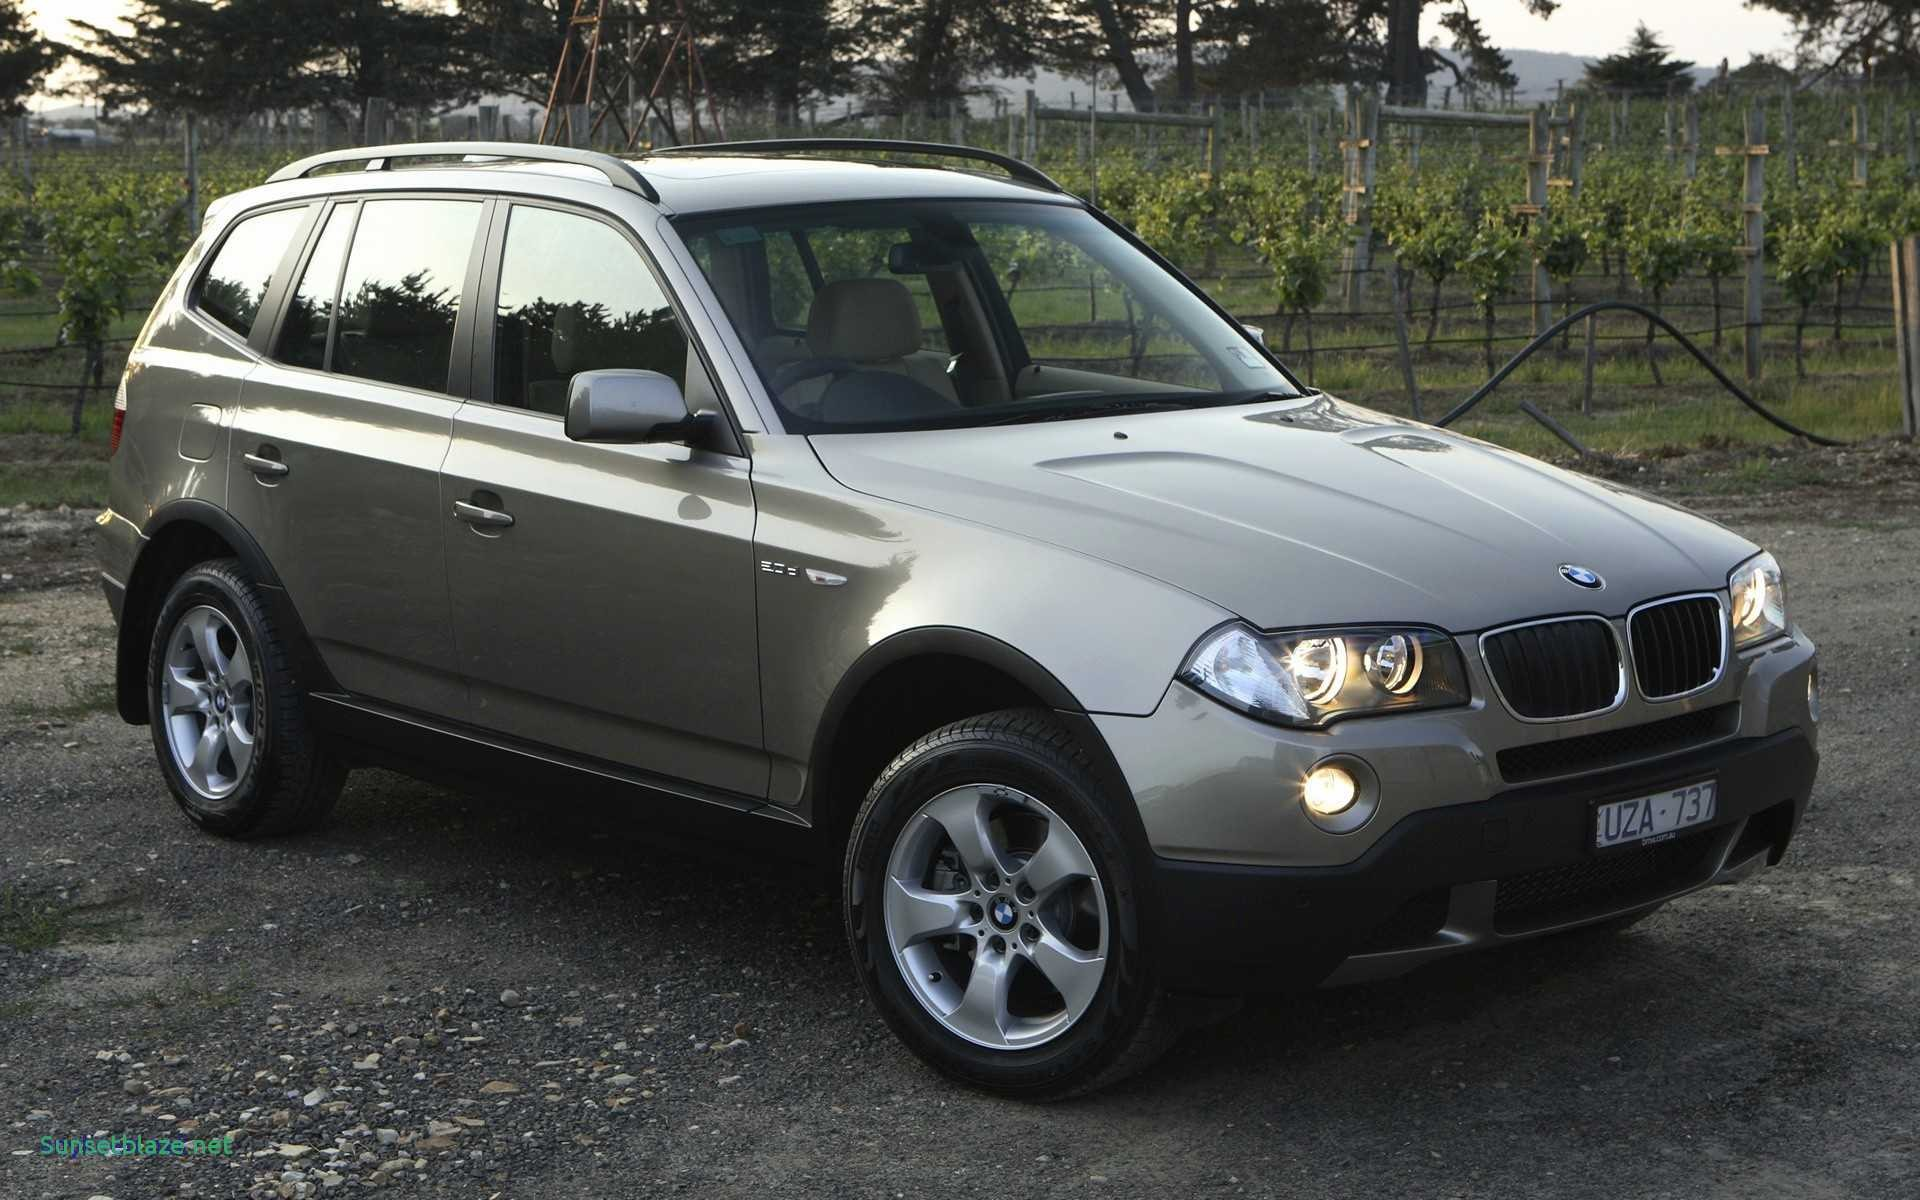 Bmw Hd Car Lovely Cool Car Wallpapers Awesome Acura 2008 Expensive Bmw X3 2 0d 2008